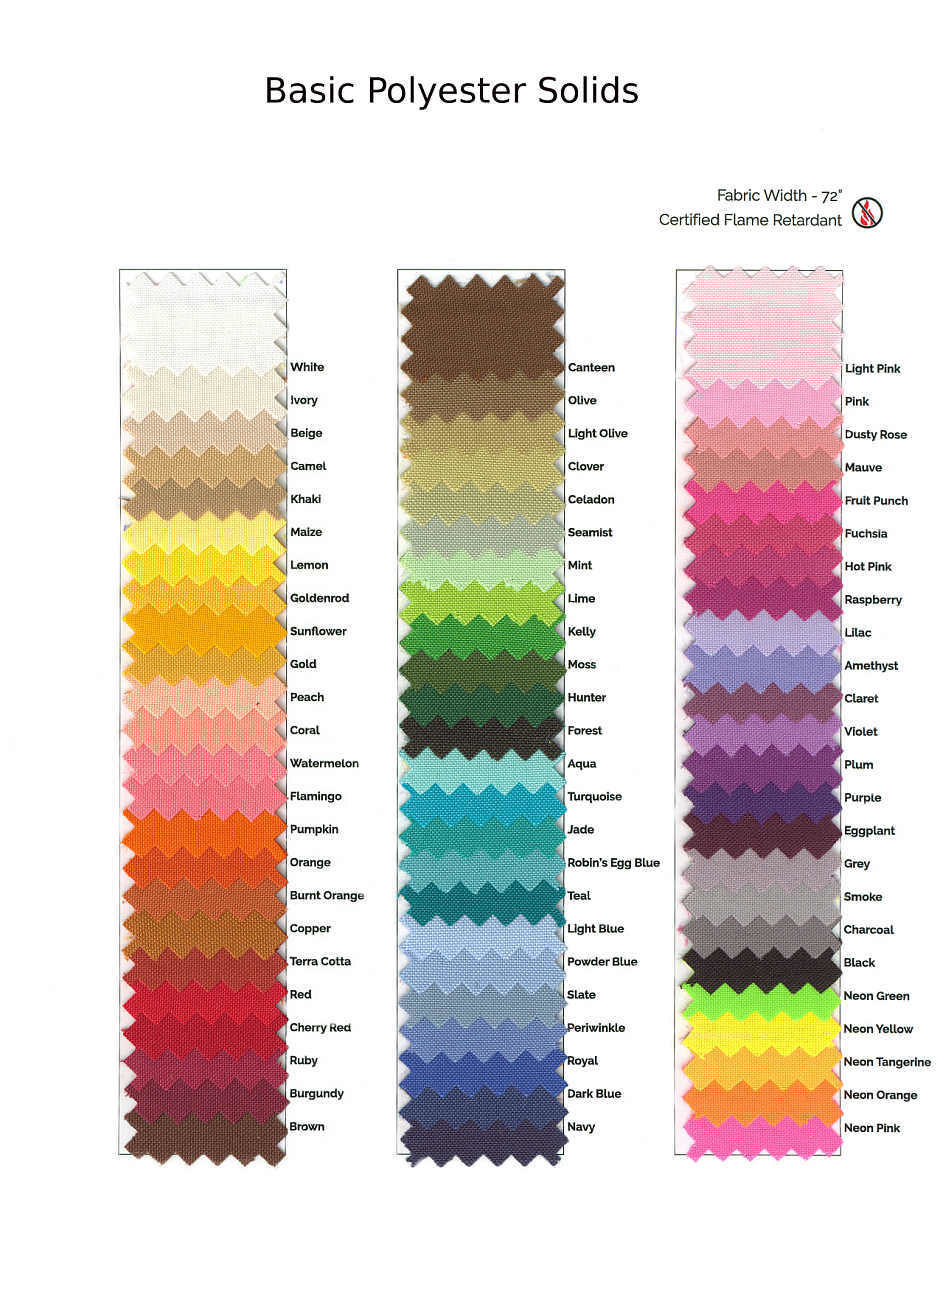 Basic Polyester Swatch Card 00061